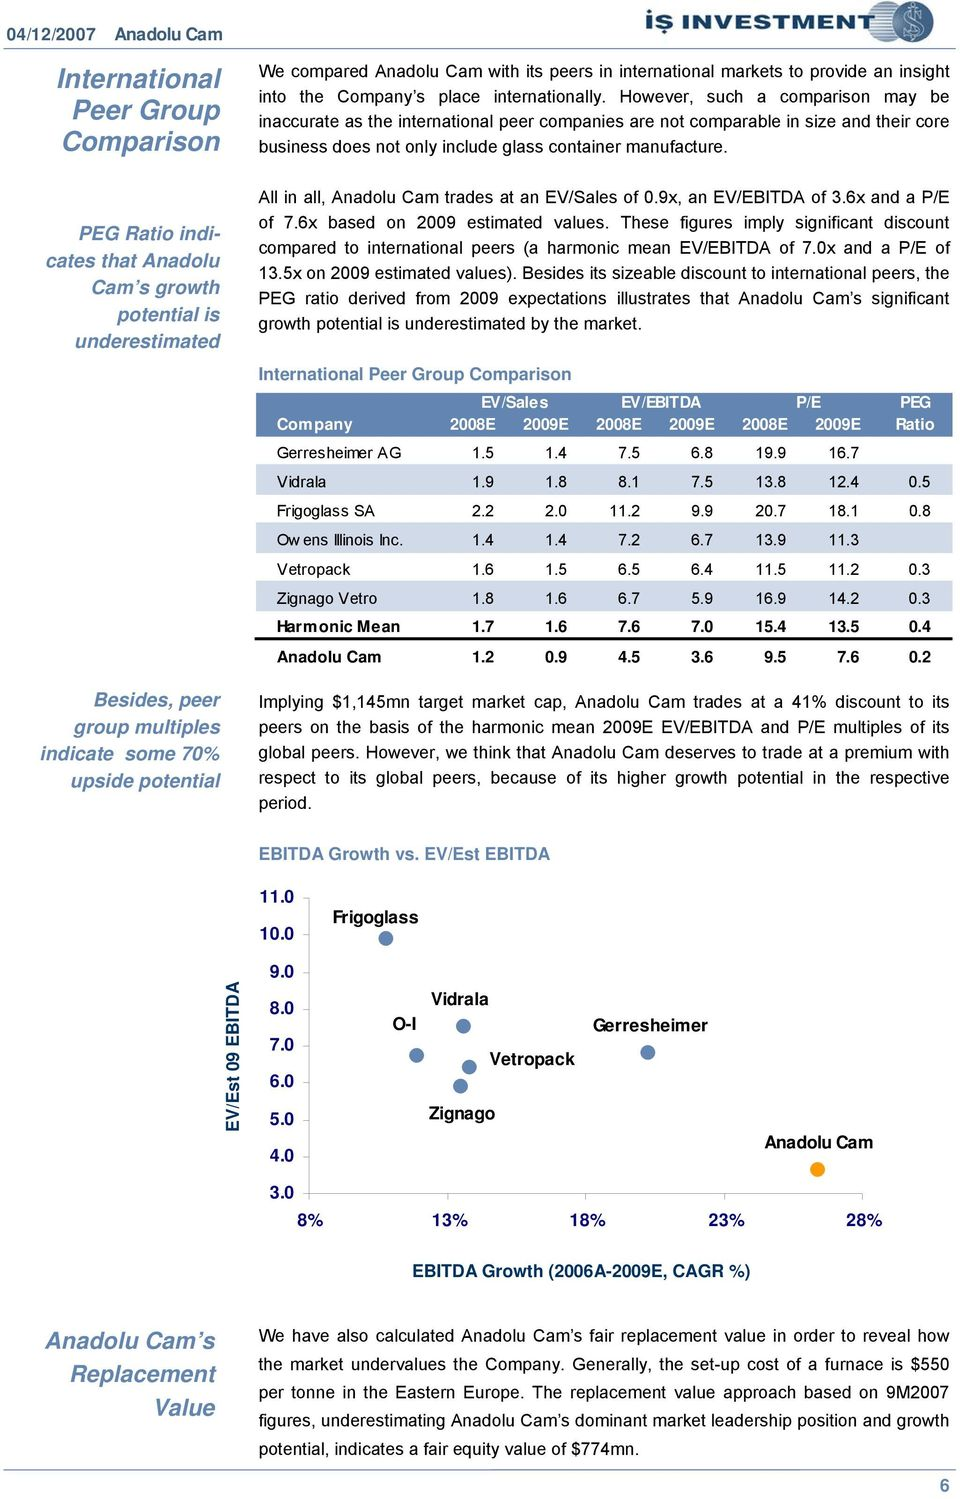 PEG Ratio indicates that Anadolu Cam s growth potential is underestimated Besides, peer group multiples indicate some 70% upside potential All in all, trades at an EV/Sales of 0.9x, an EV/EBITDA of 3.